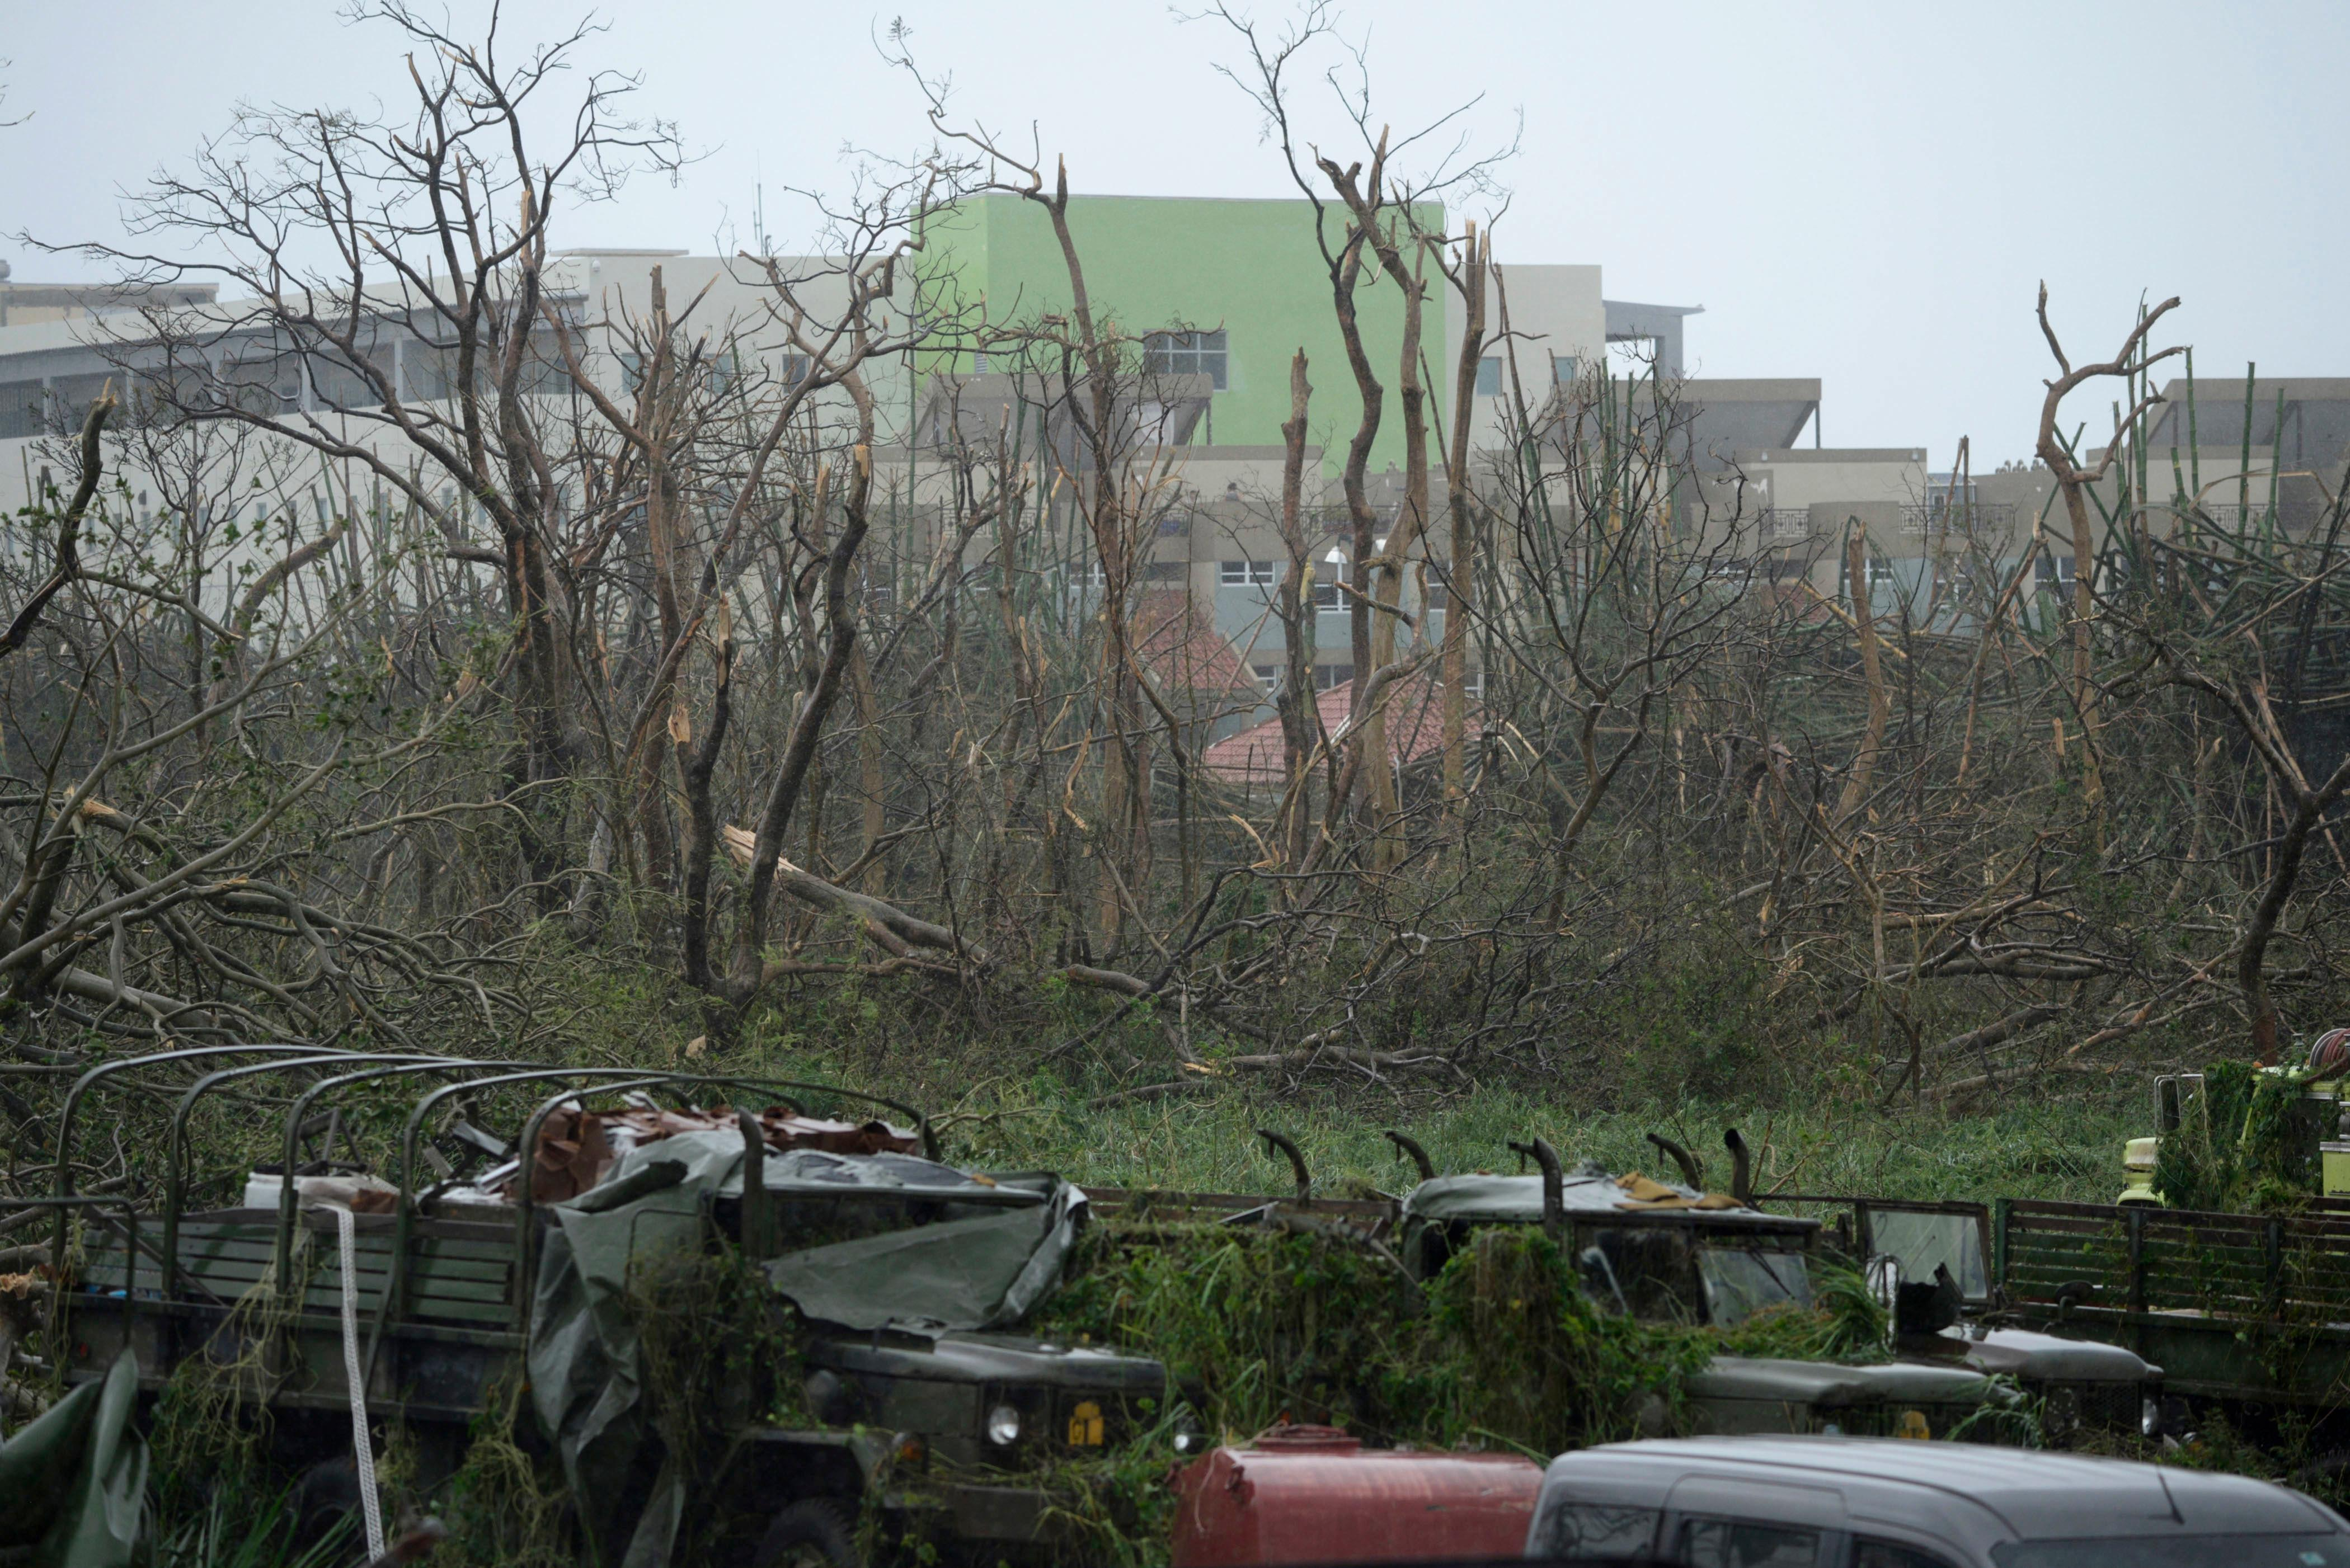 CORRECTS TO REMOVE REFERENCE OF HURRICANE CATEGORY - Trees stripped of their foliage and damaged trucks stand at the principal entrance at the Emergency Management Agency during the impact of Hurricane Maria, which hit the eastern region of the island, in Humacao, Puerto Rico, Wednesday, Sept. 20, 2017. The U.S. National Hurricane Center says Maria has lost its major hurricane status, after raking Puerto Rico. But forecasters say some strengthening is in the forecast and Maria could again become a major hurricane by Thursday. (AP Photo/Carlos Giusti)